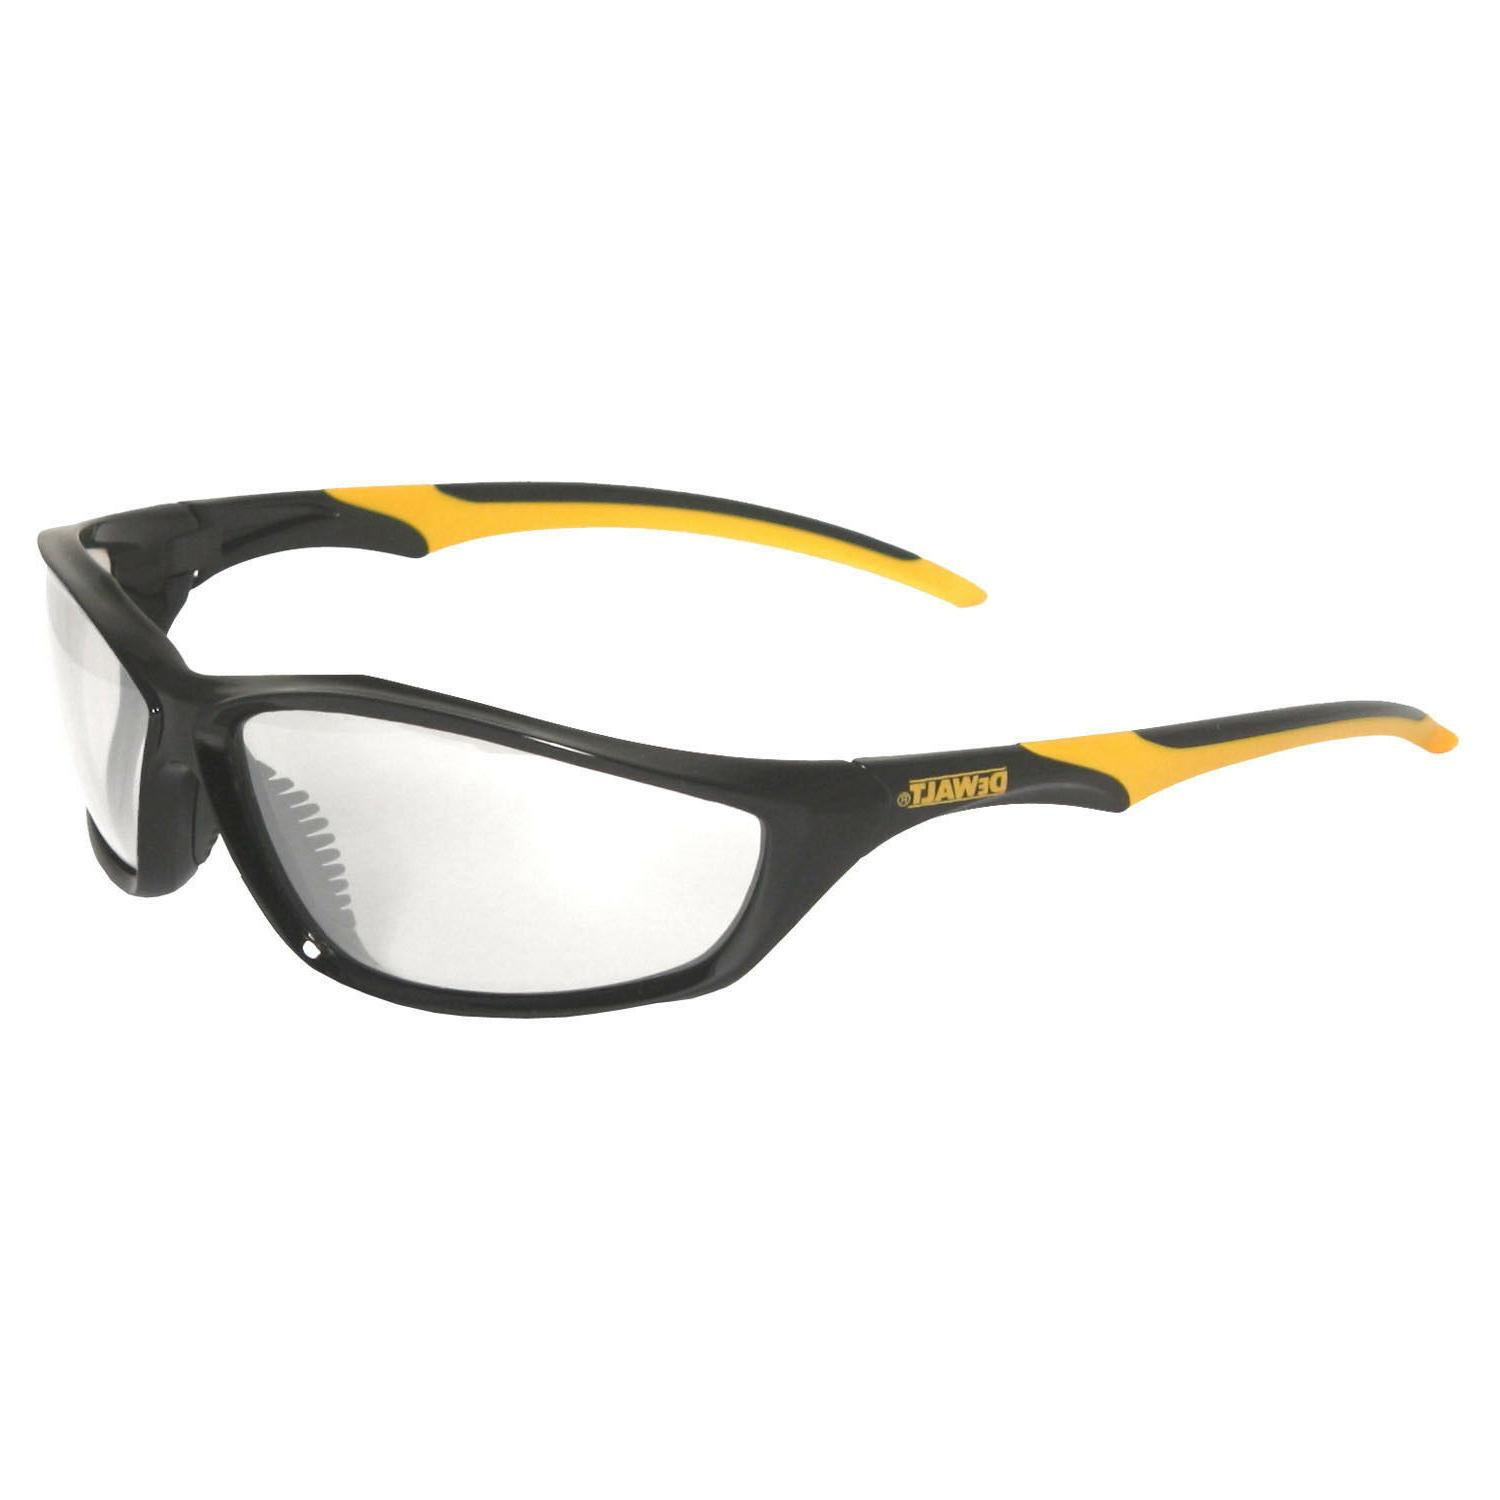 dpg96 1 router safety glasses clear lens